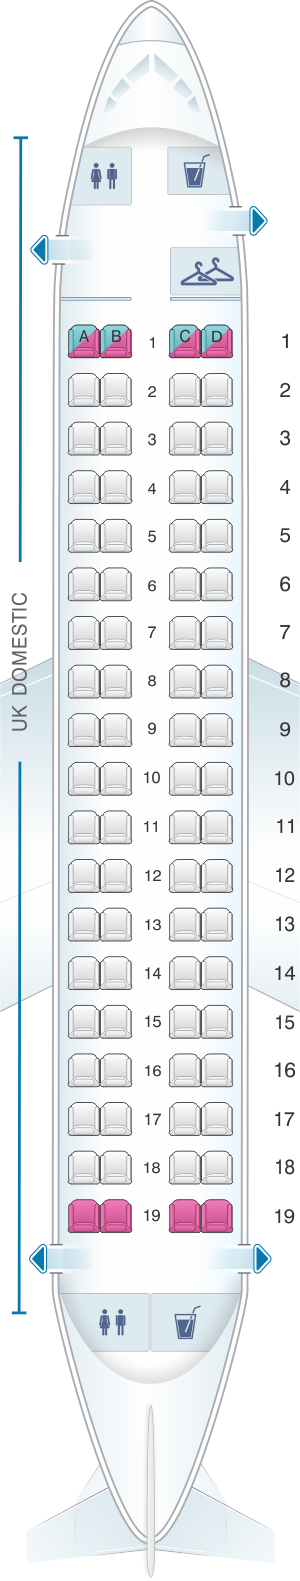 Seat map for British Airways Embraer 170 UK Domestic